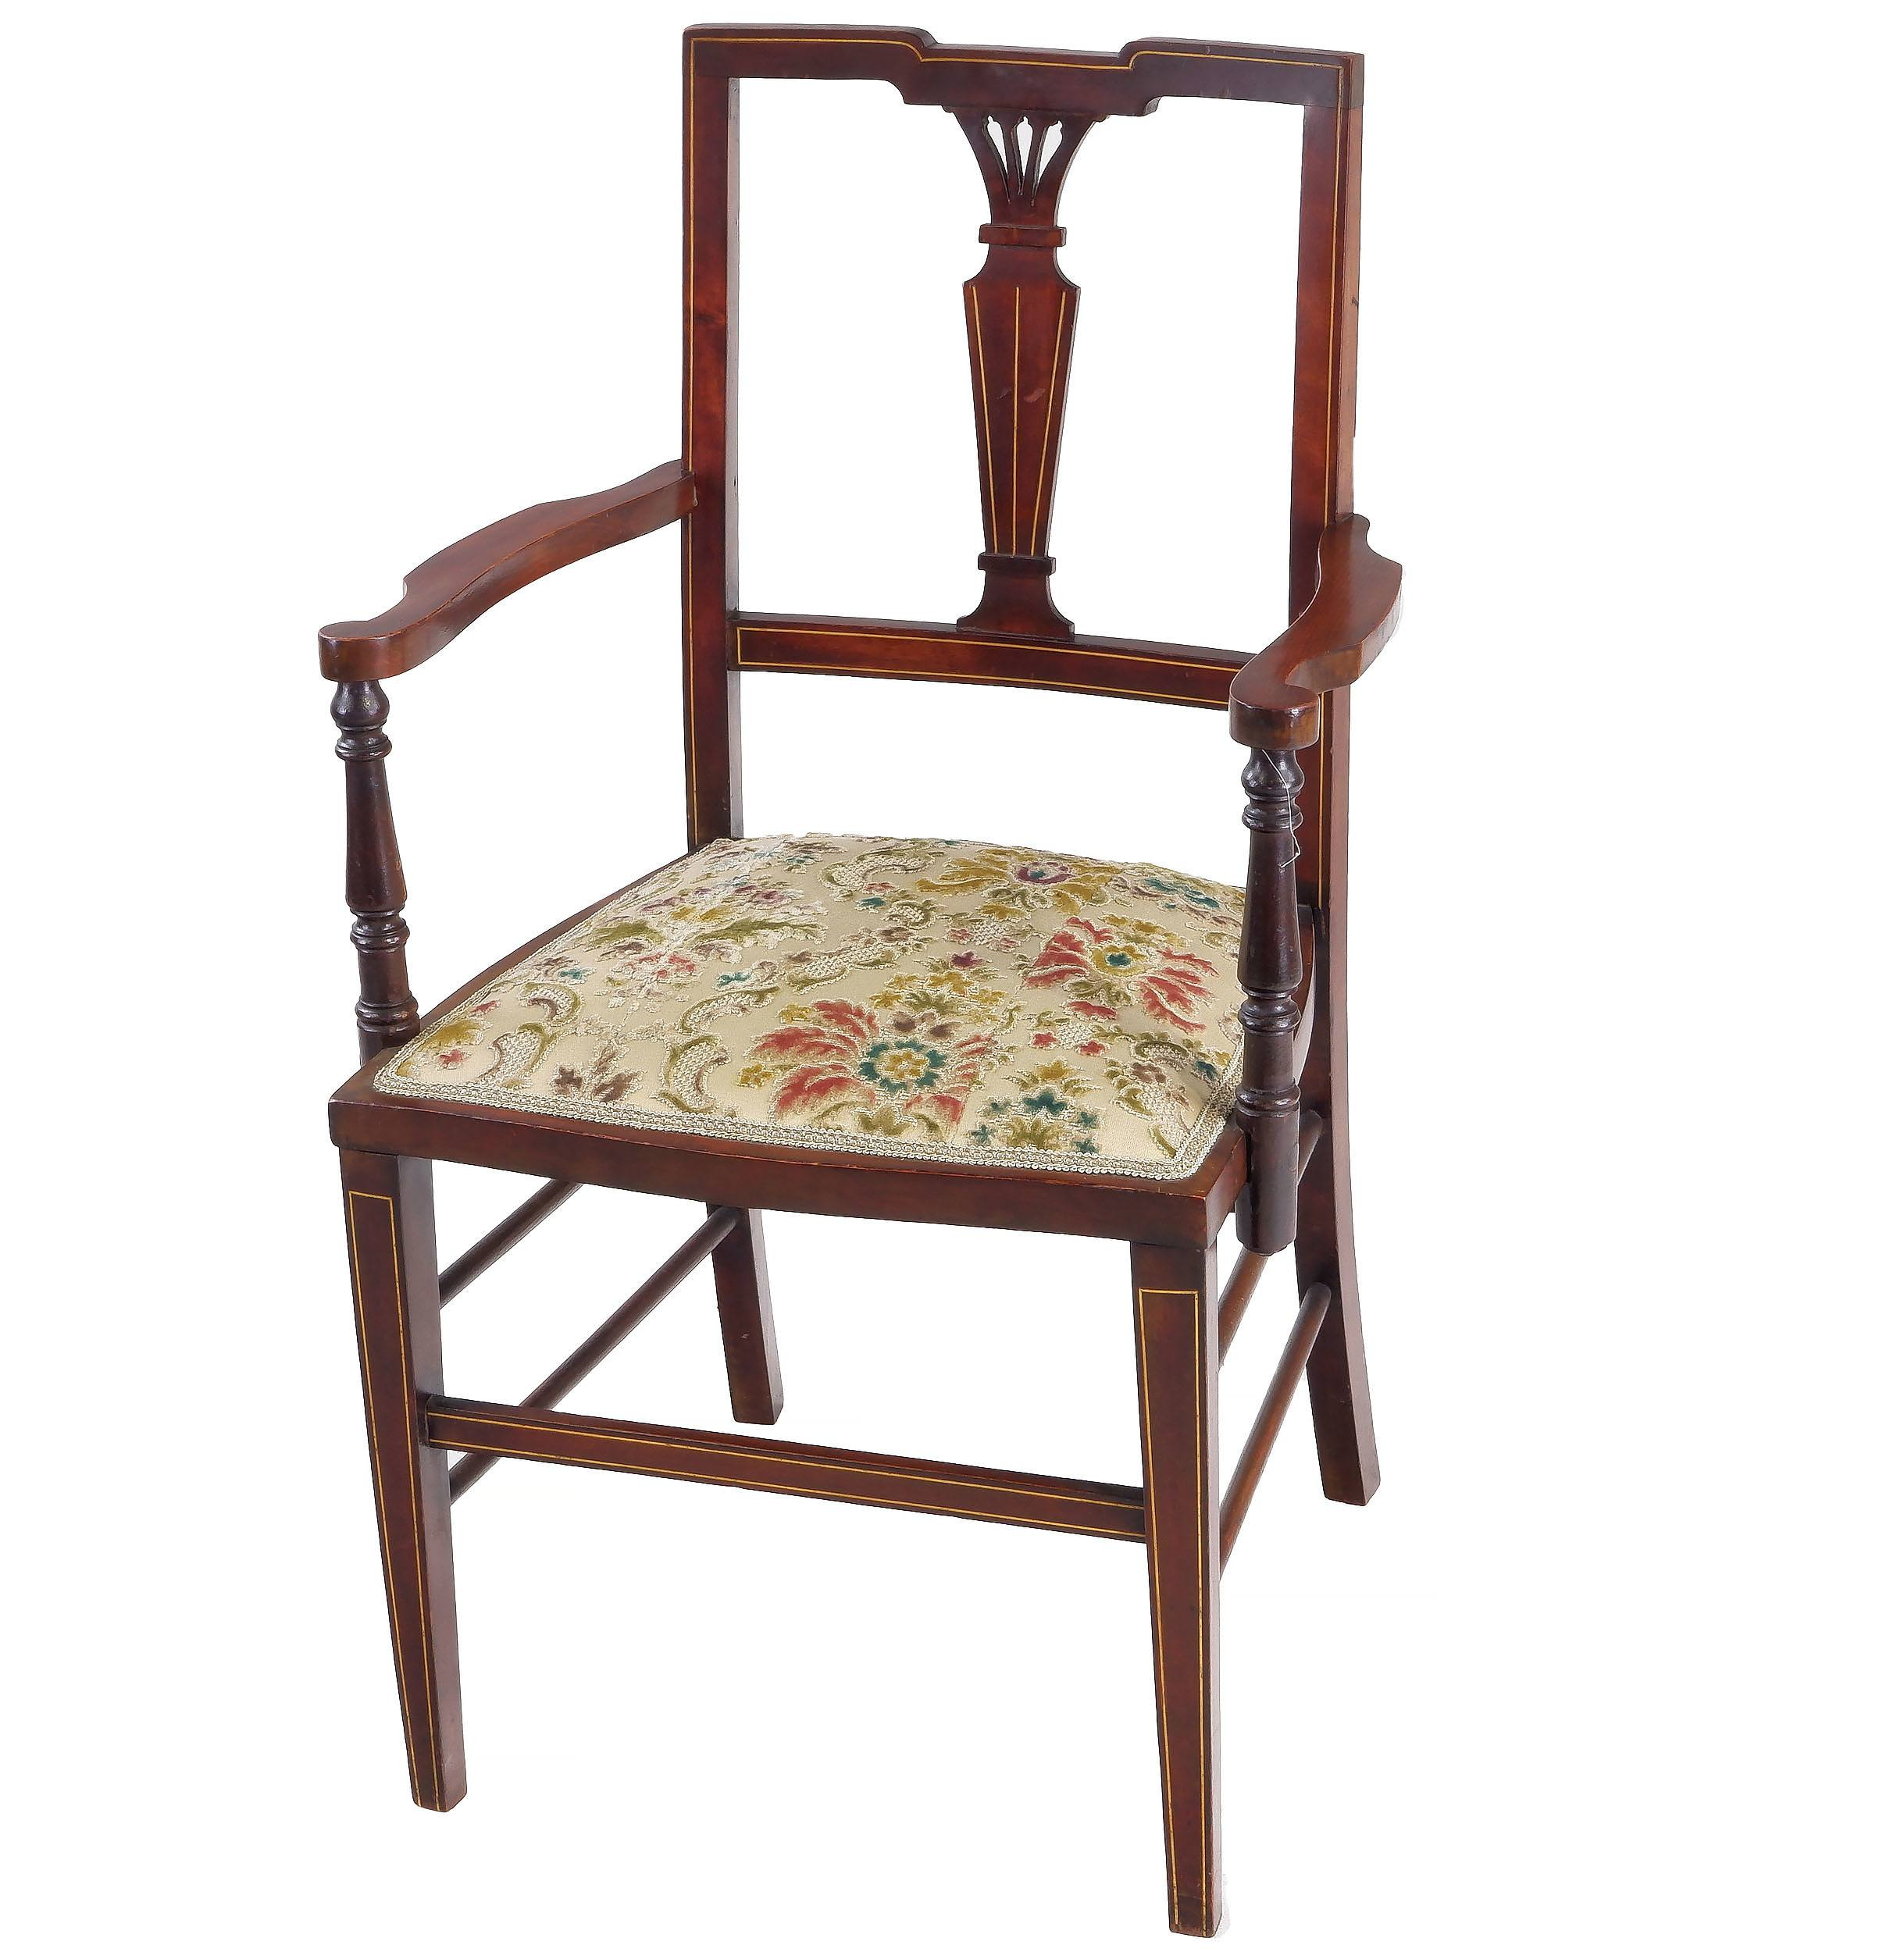 'Sheraton Revival String Inlaid Mahogany Armchair, Early 20th Century, and Another Single Chair En Suite'